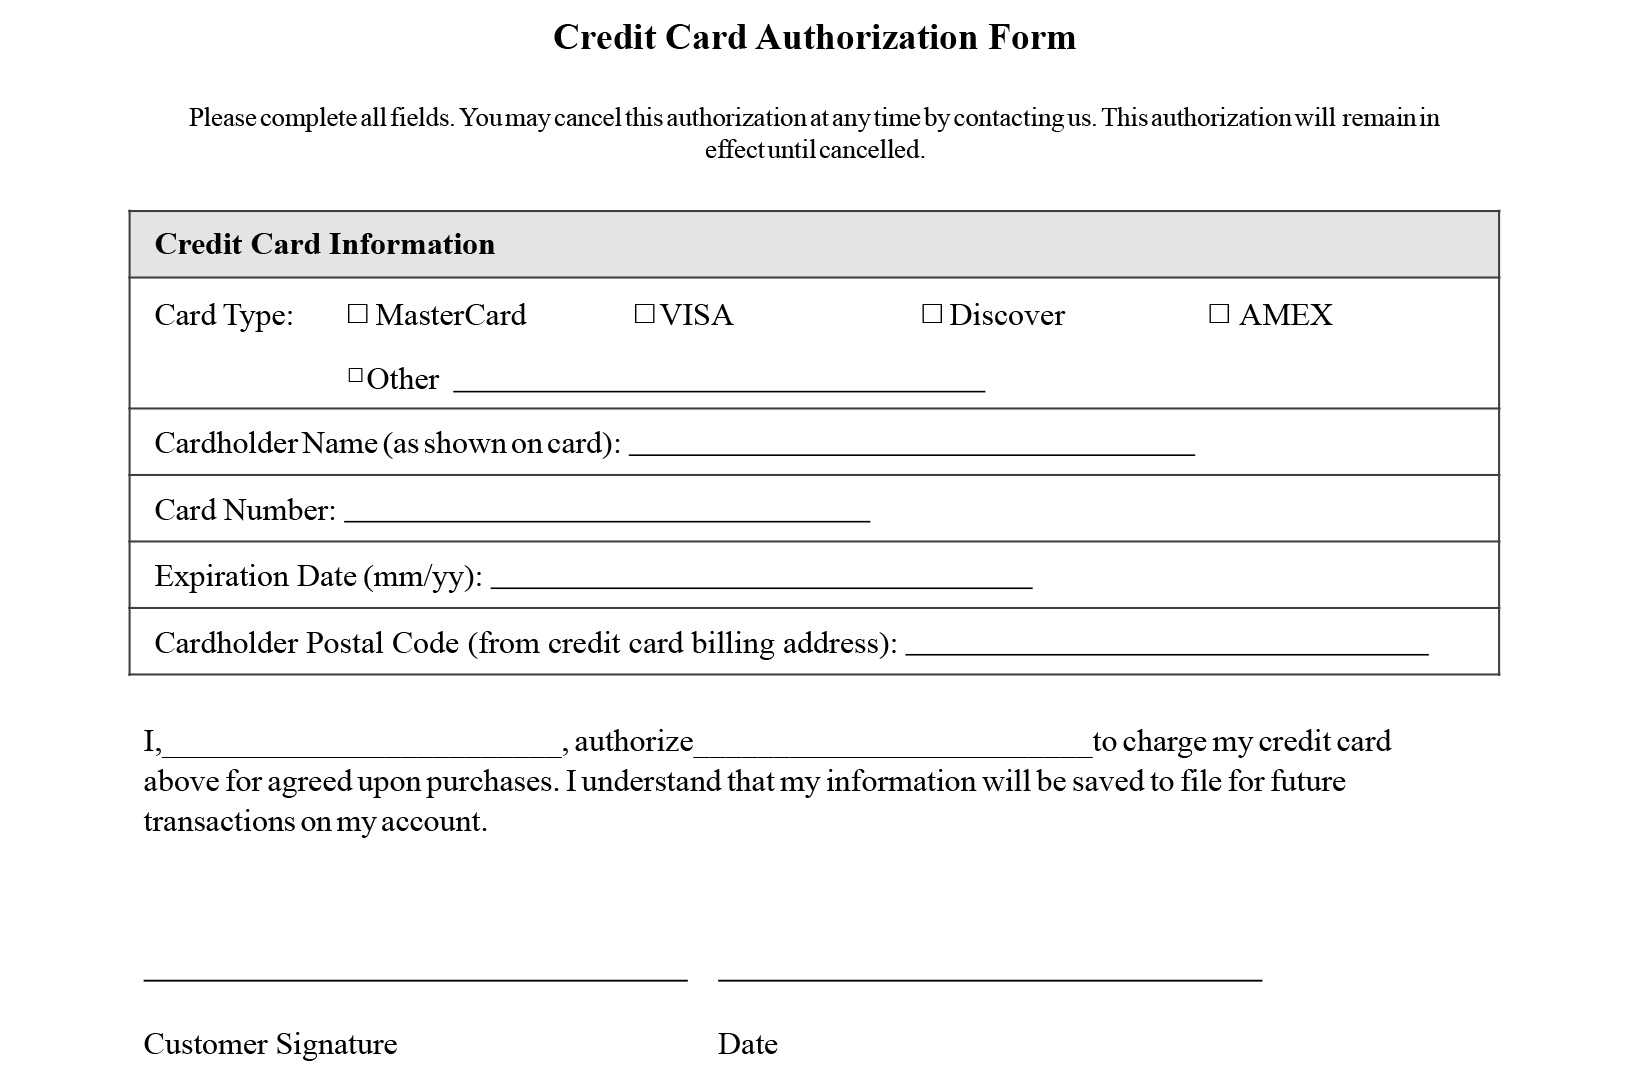 Credit Card Authorization Form Templates [Download] With Authorization To Charge Credit Card Template